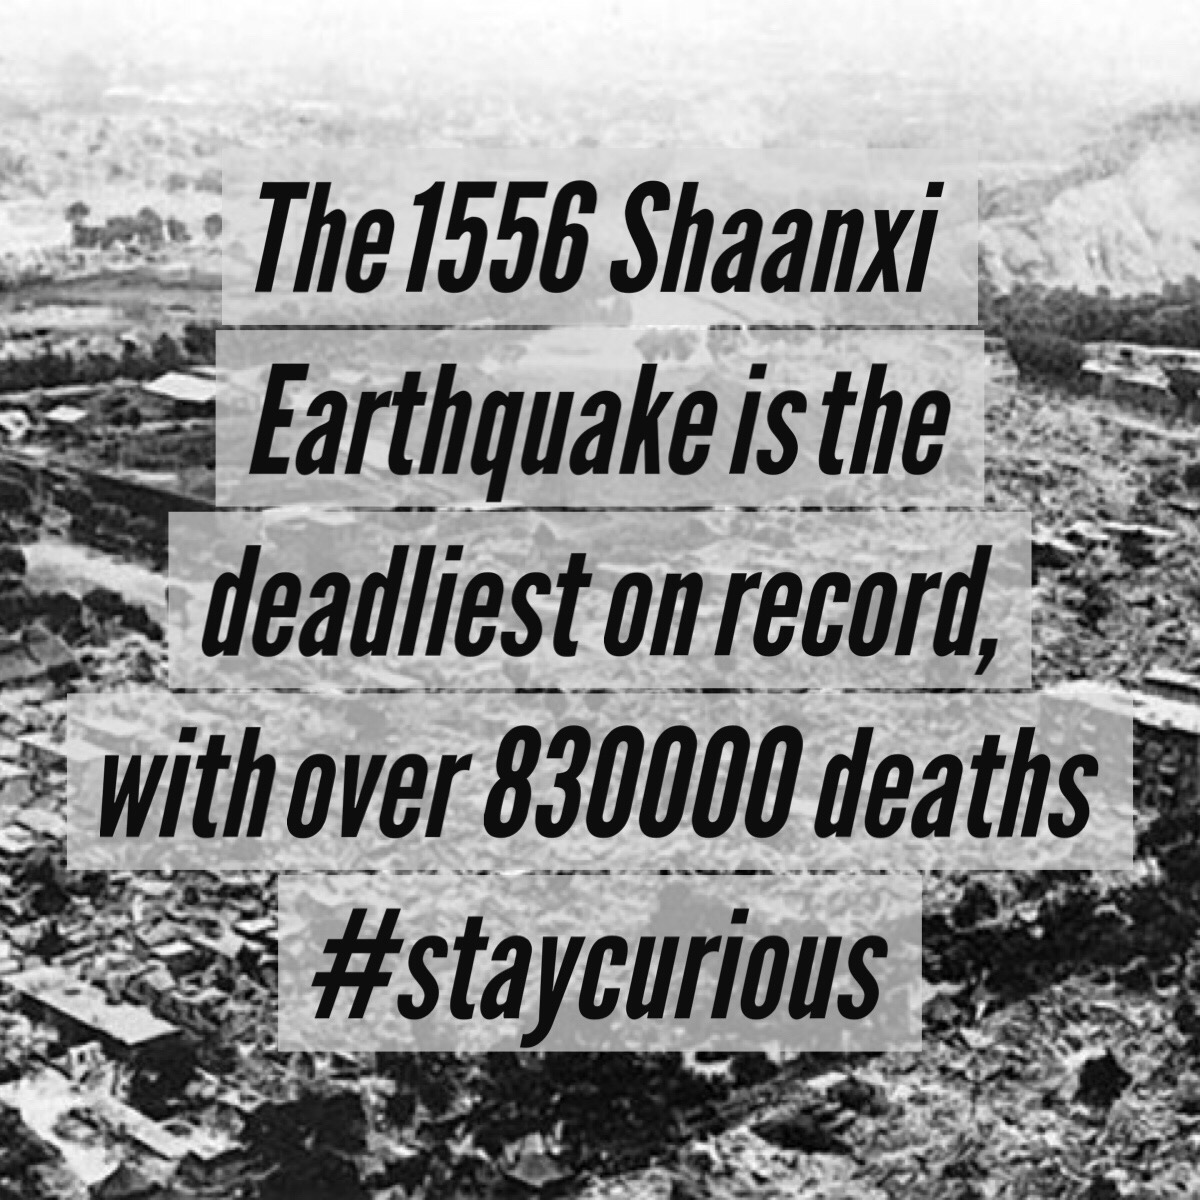 The 1556 Shaanxi Earthquake is the deadliest on record, with over 830000  deaths